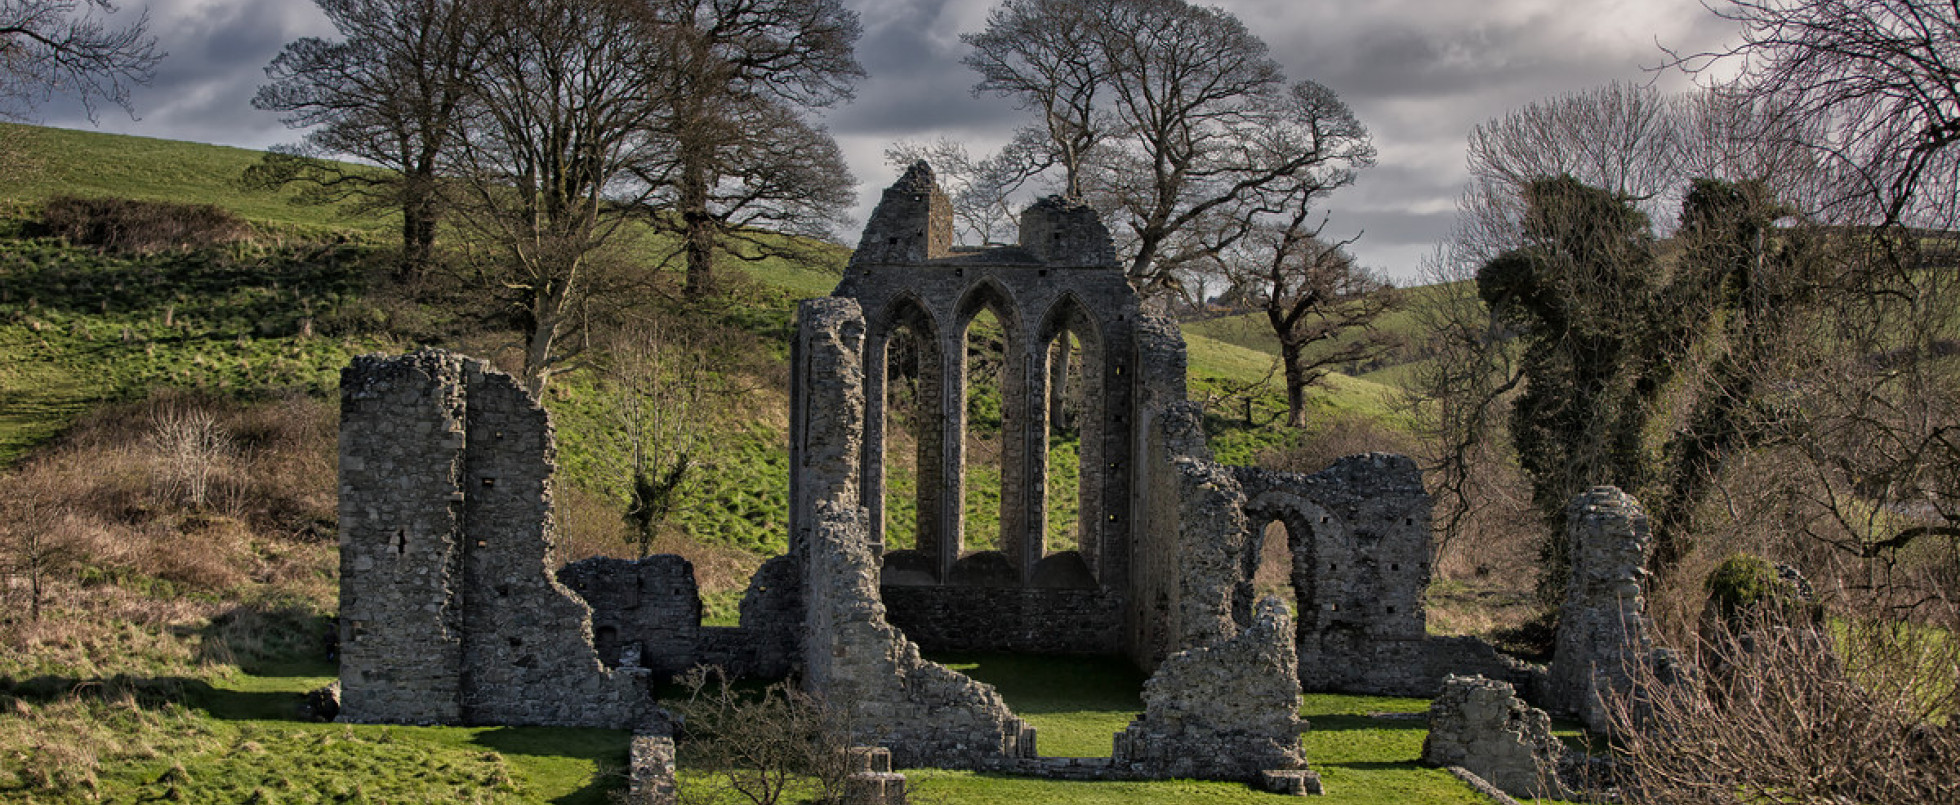 Inch Abbey: Robb Stark's Camp in the Riverlands